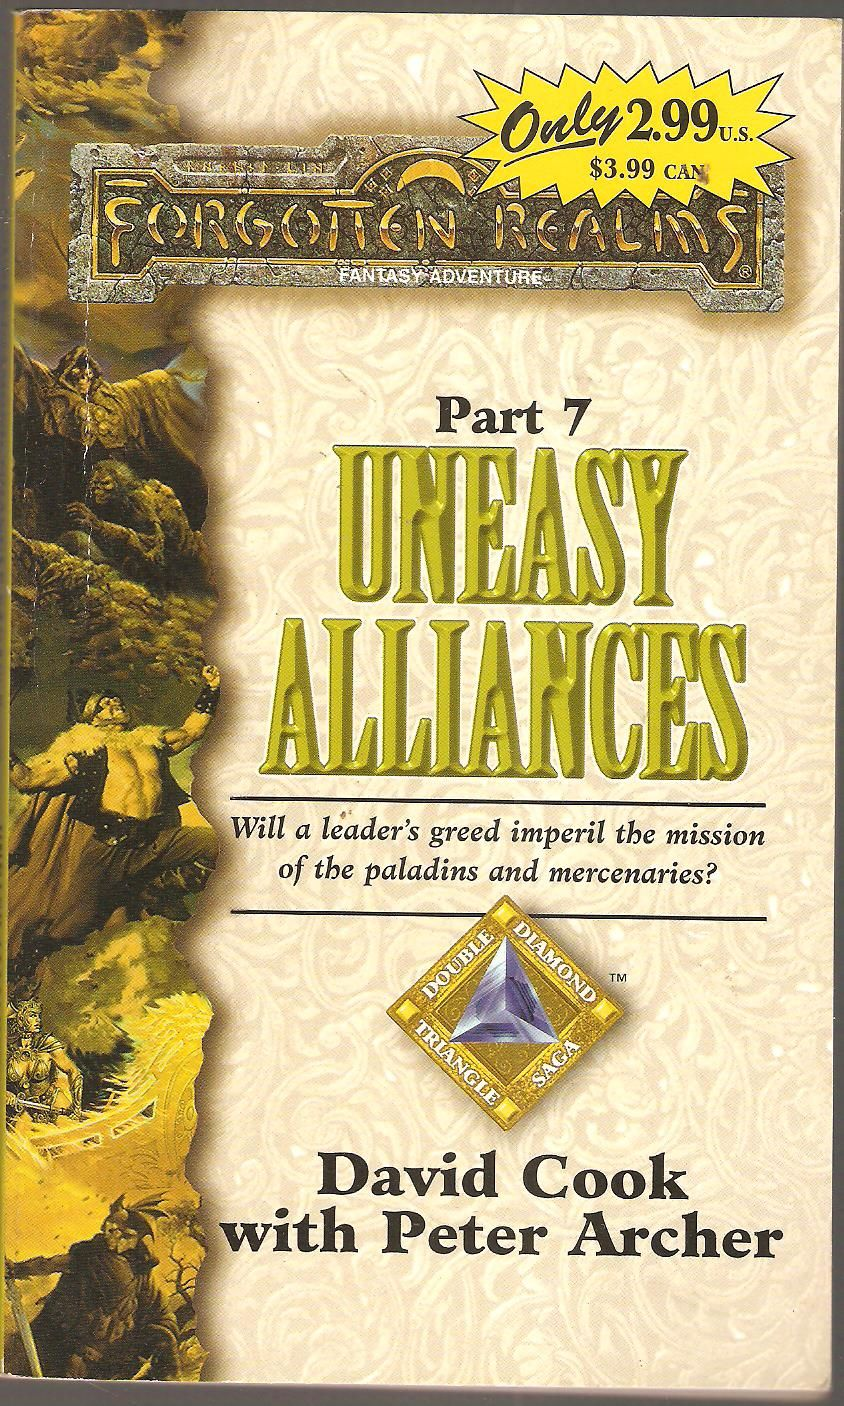 Uneasy Alliances by David Cook with Peter Archer. Double Diamond Triangle  Saga Part 7.